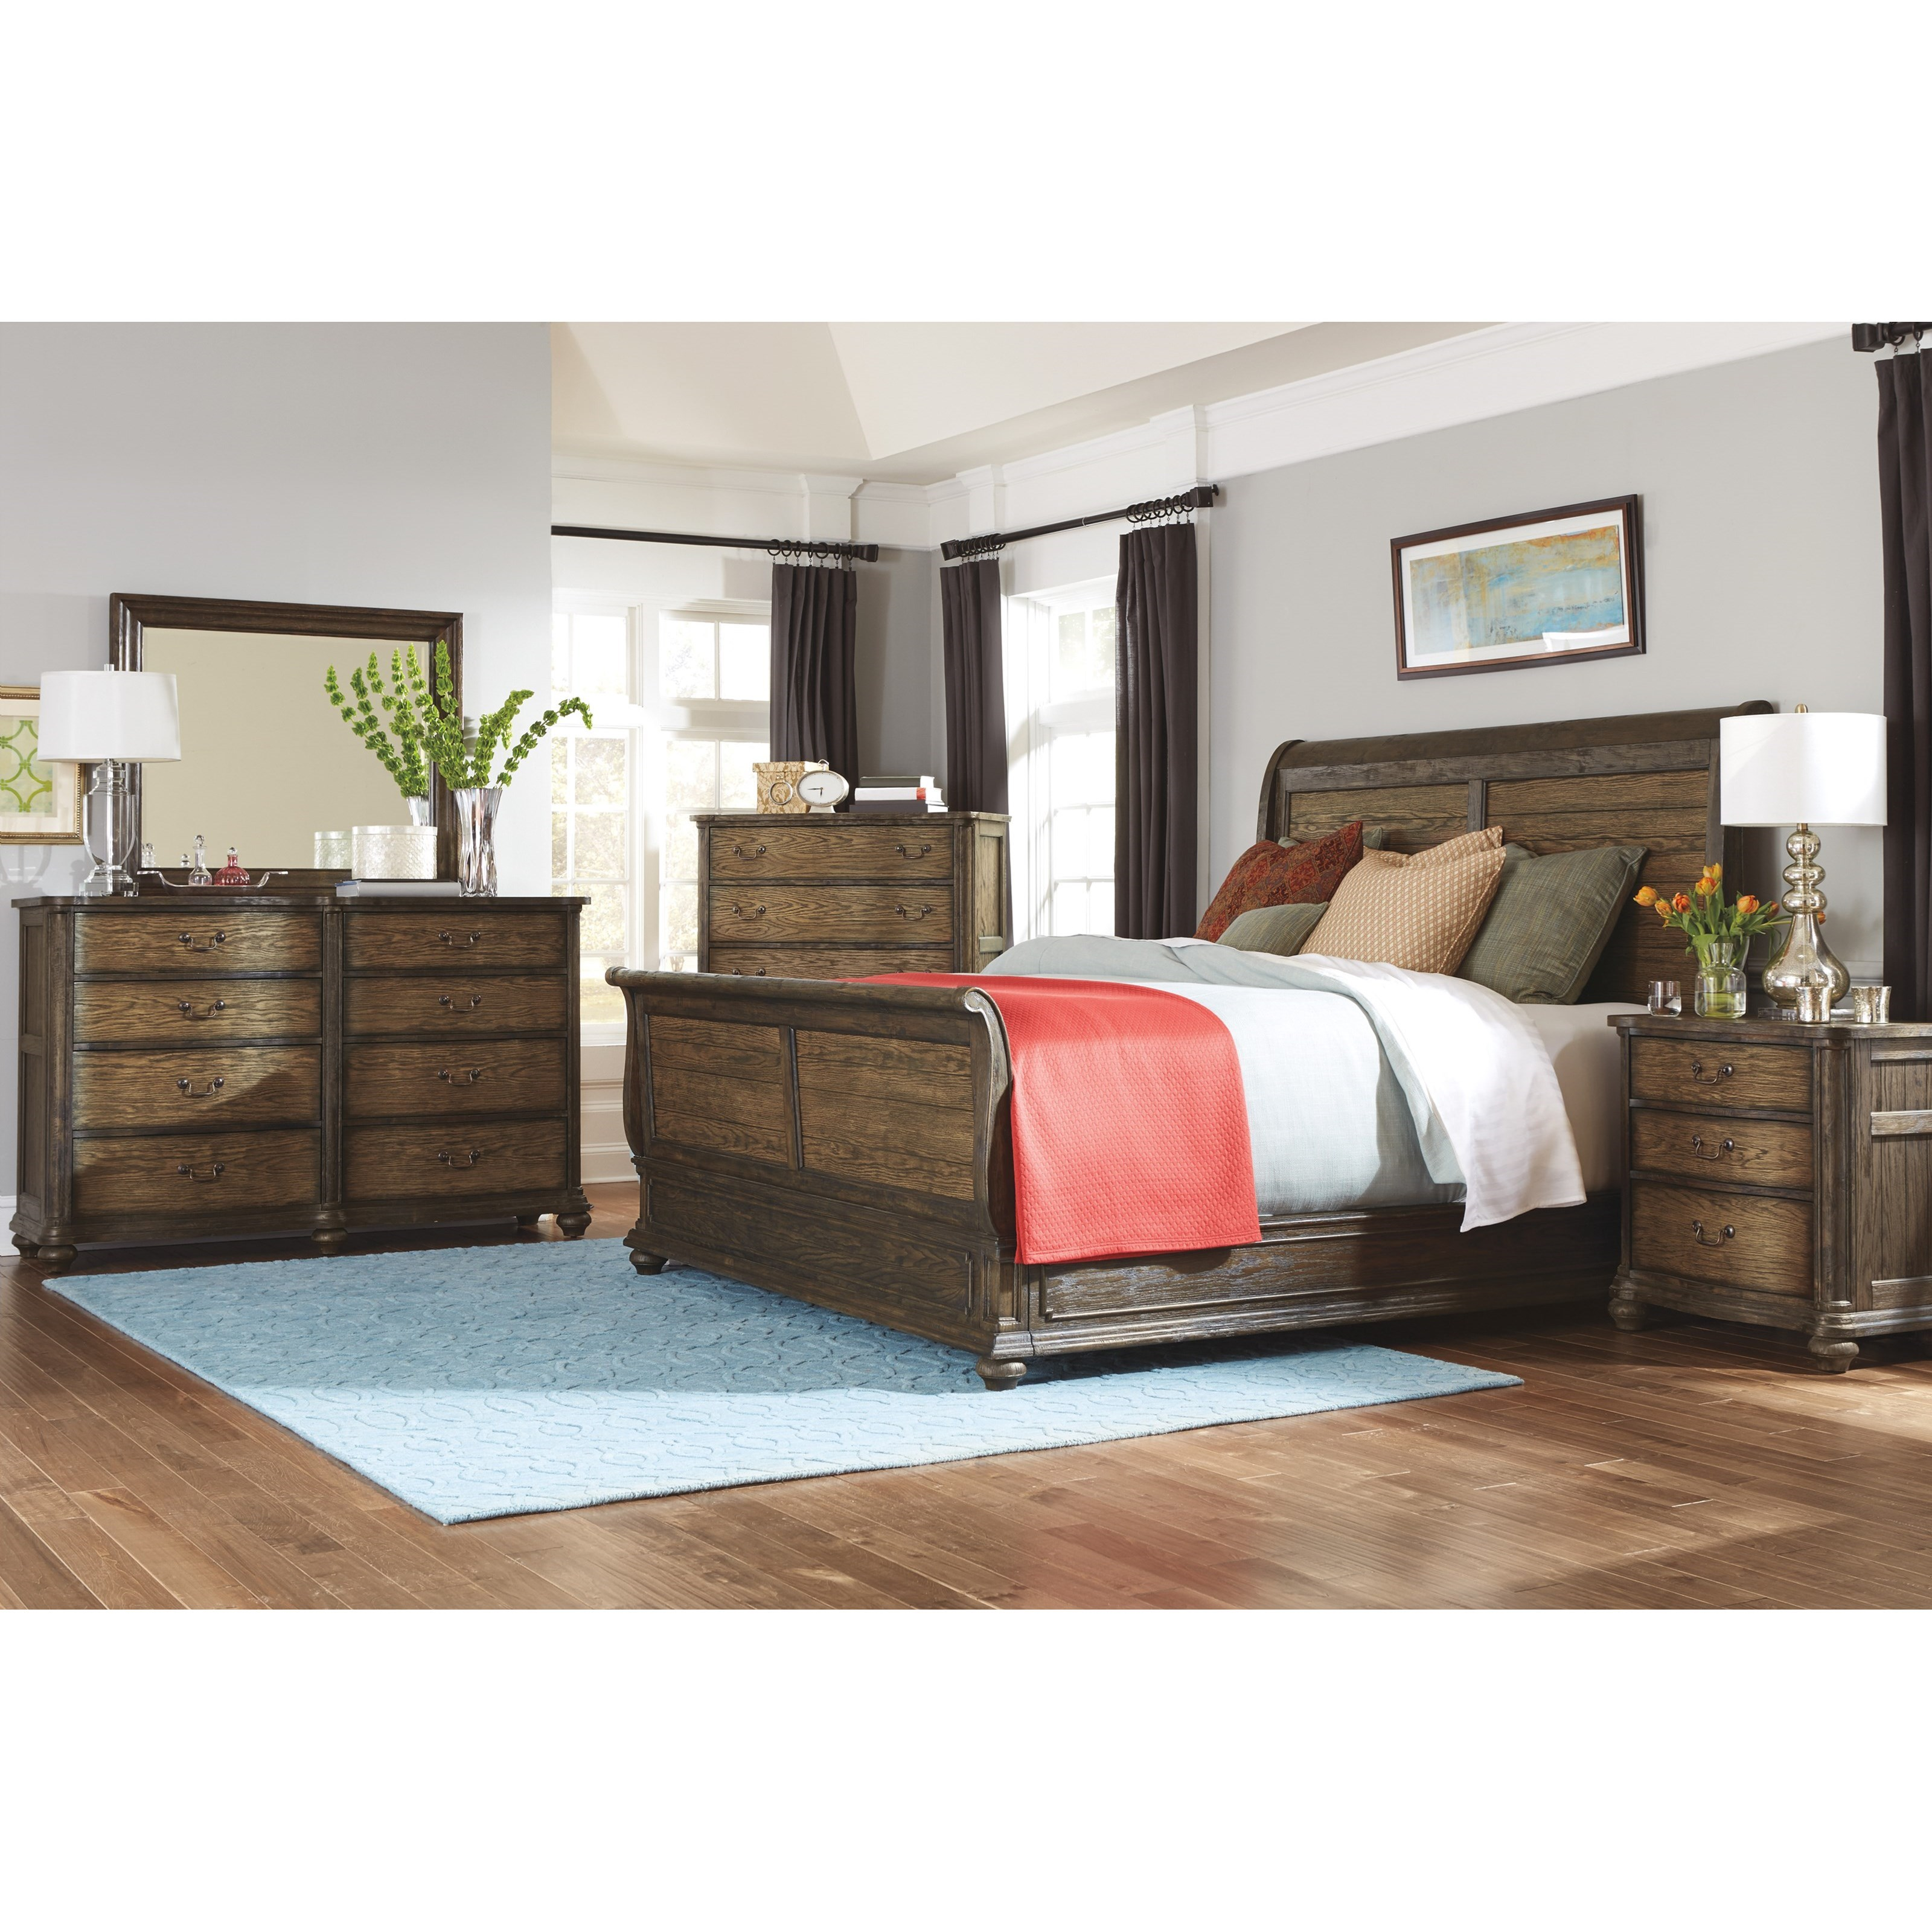 Magnussen Harrison Bedroom Furniture Bedroom Groups Baton Rouge And Lafayette Louisiana Bedroom